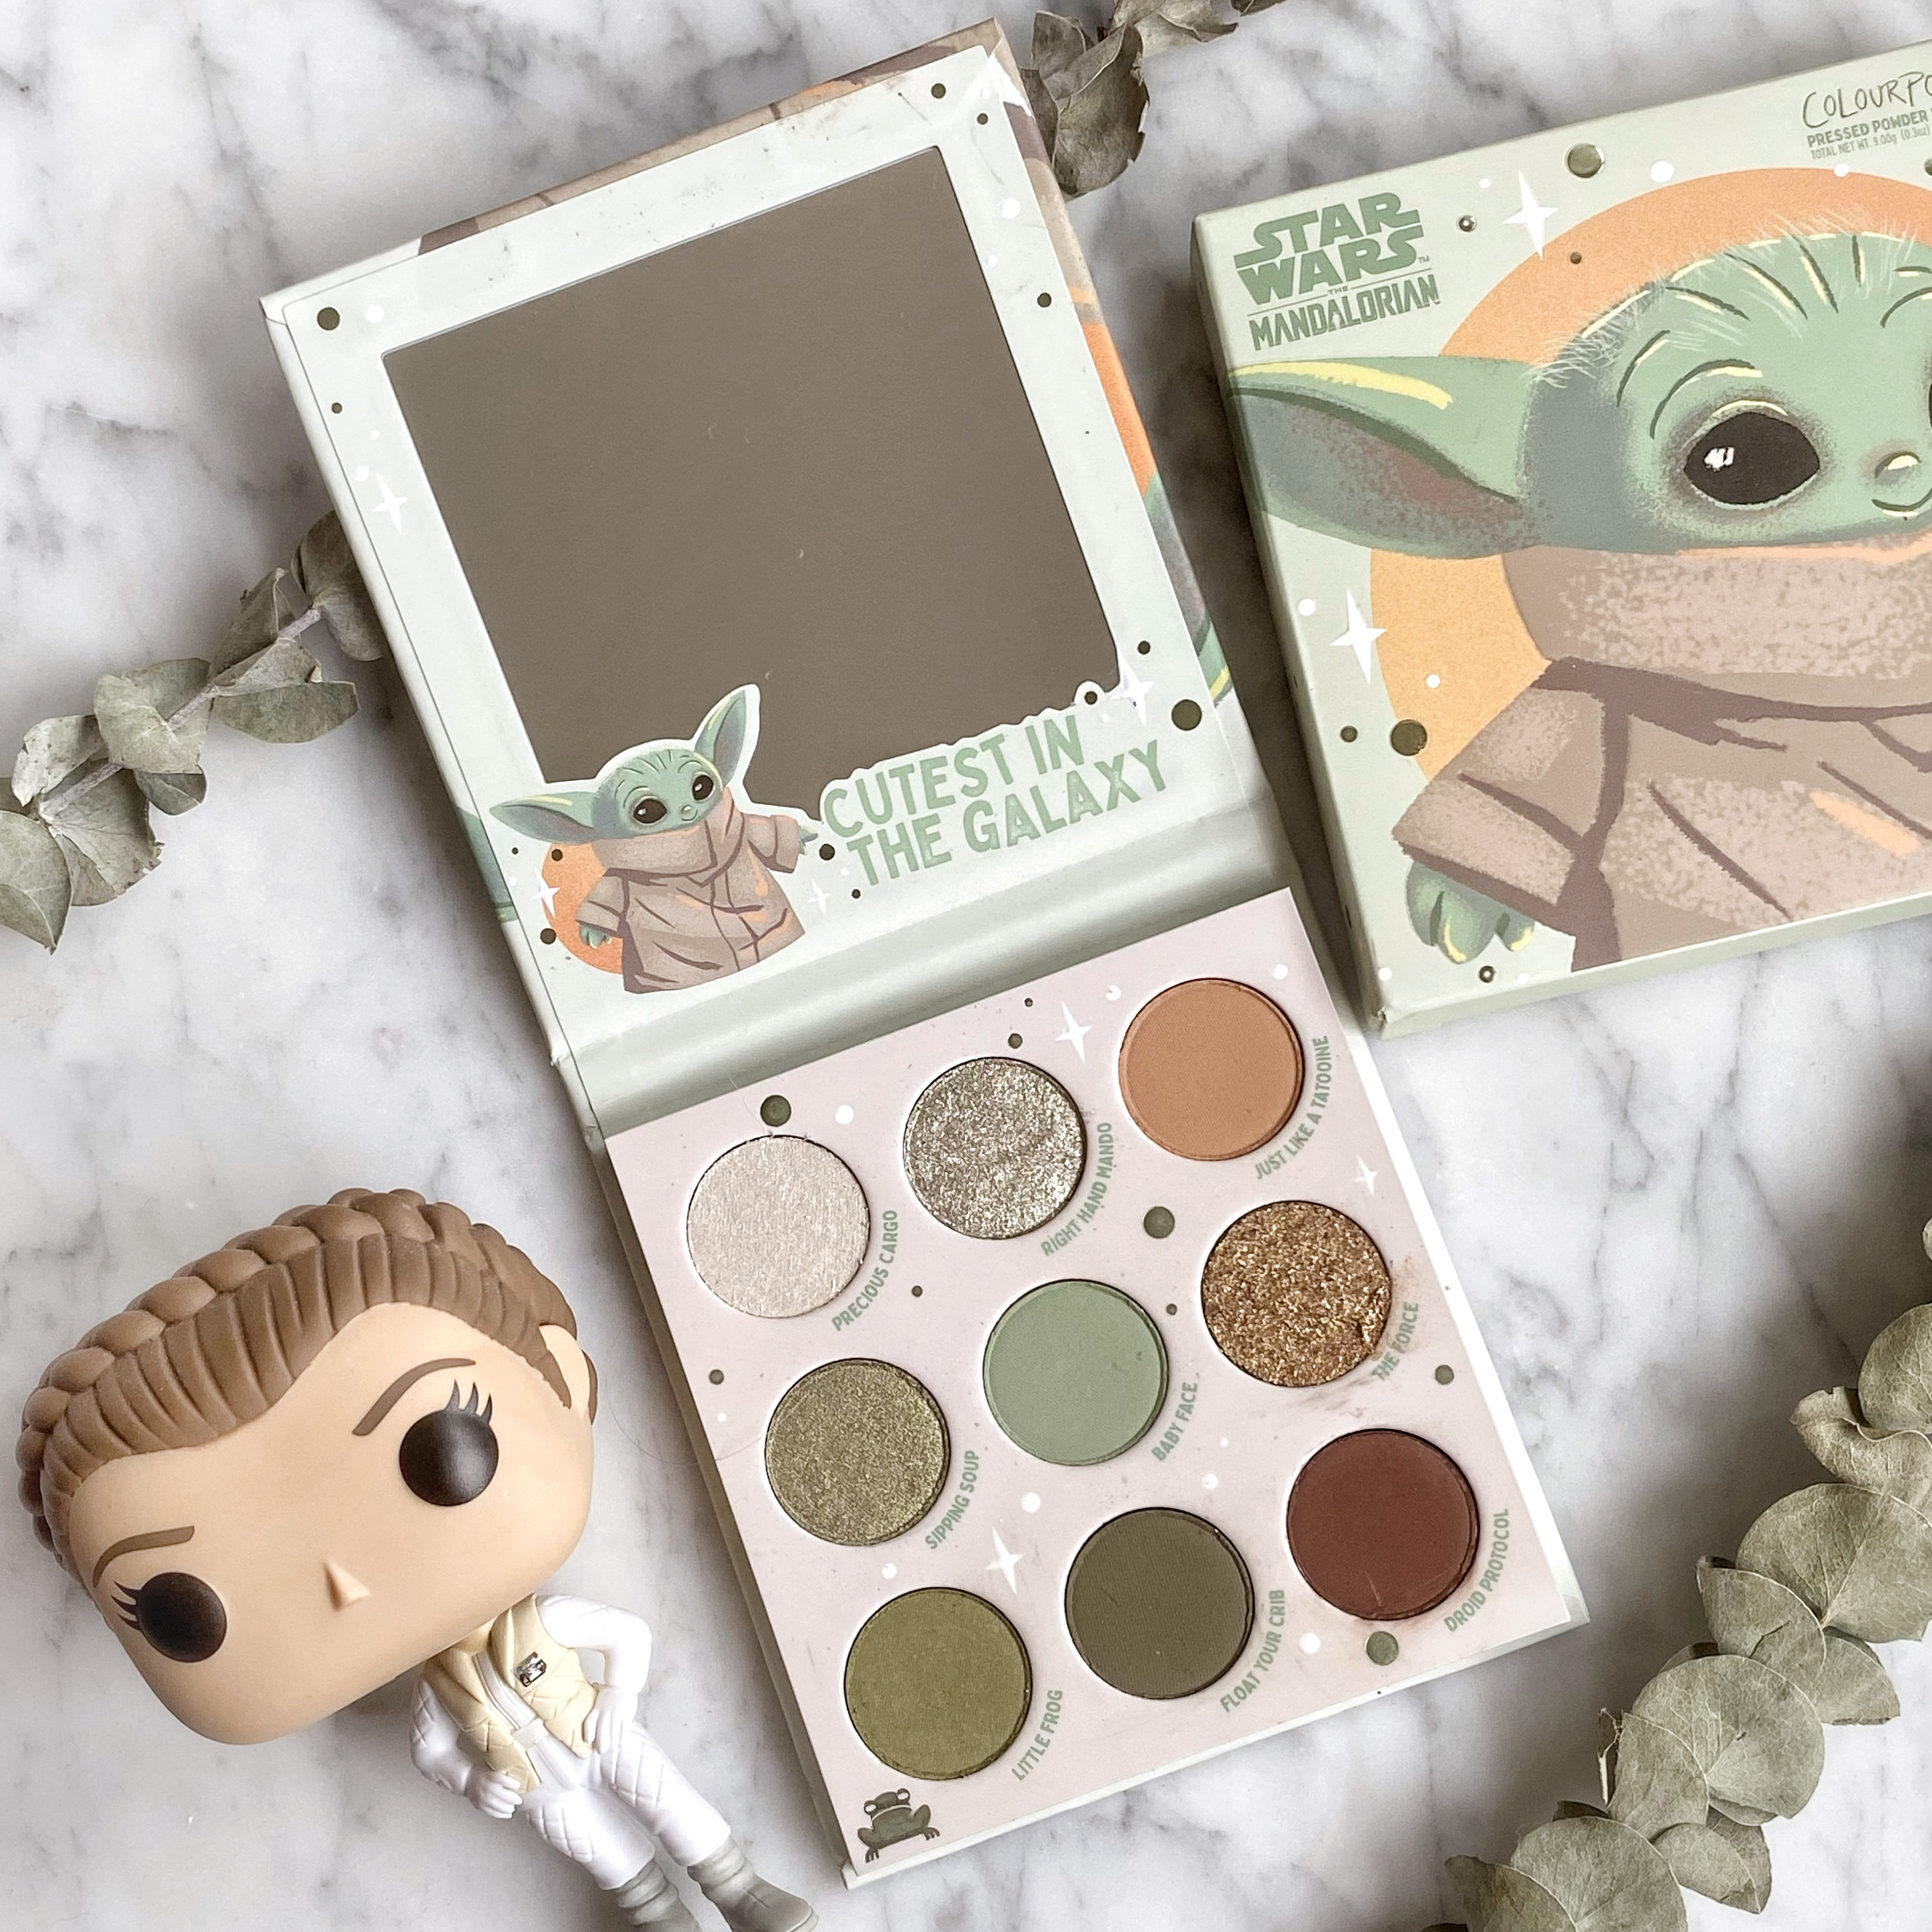 The Child - Colourpop x The Mandalorian Palette Review, Swatches and Look Tutorial